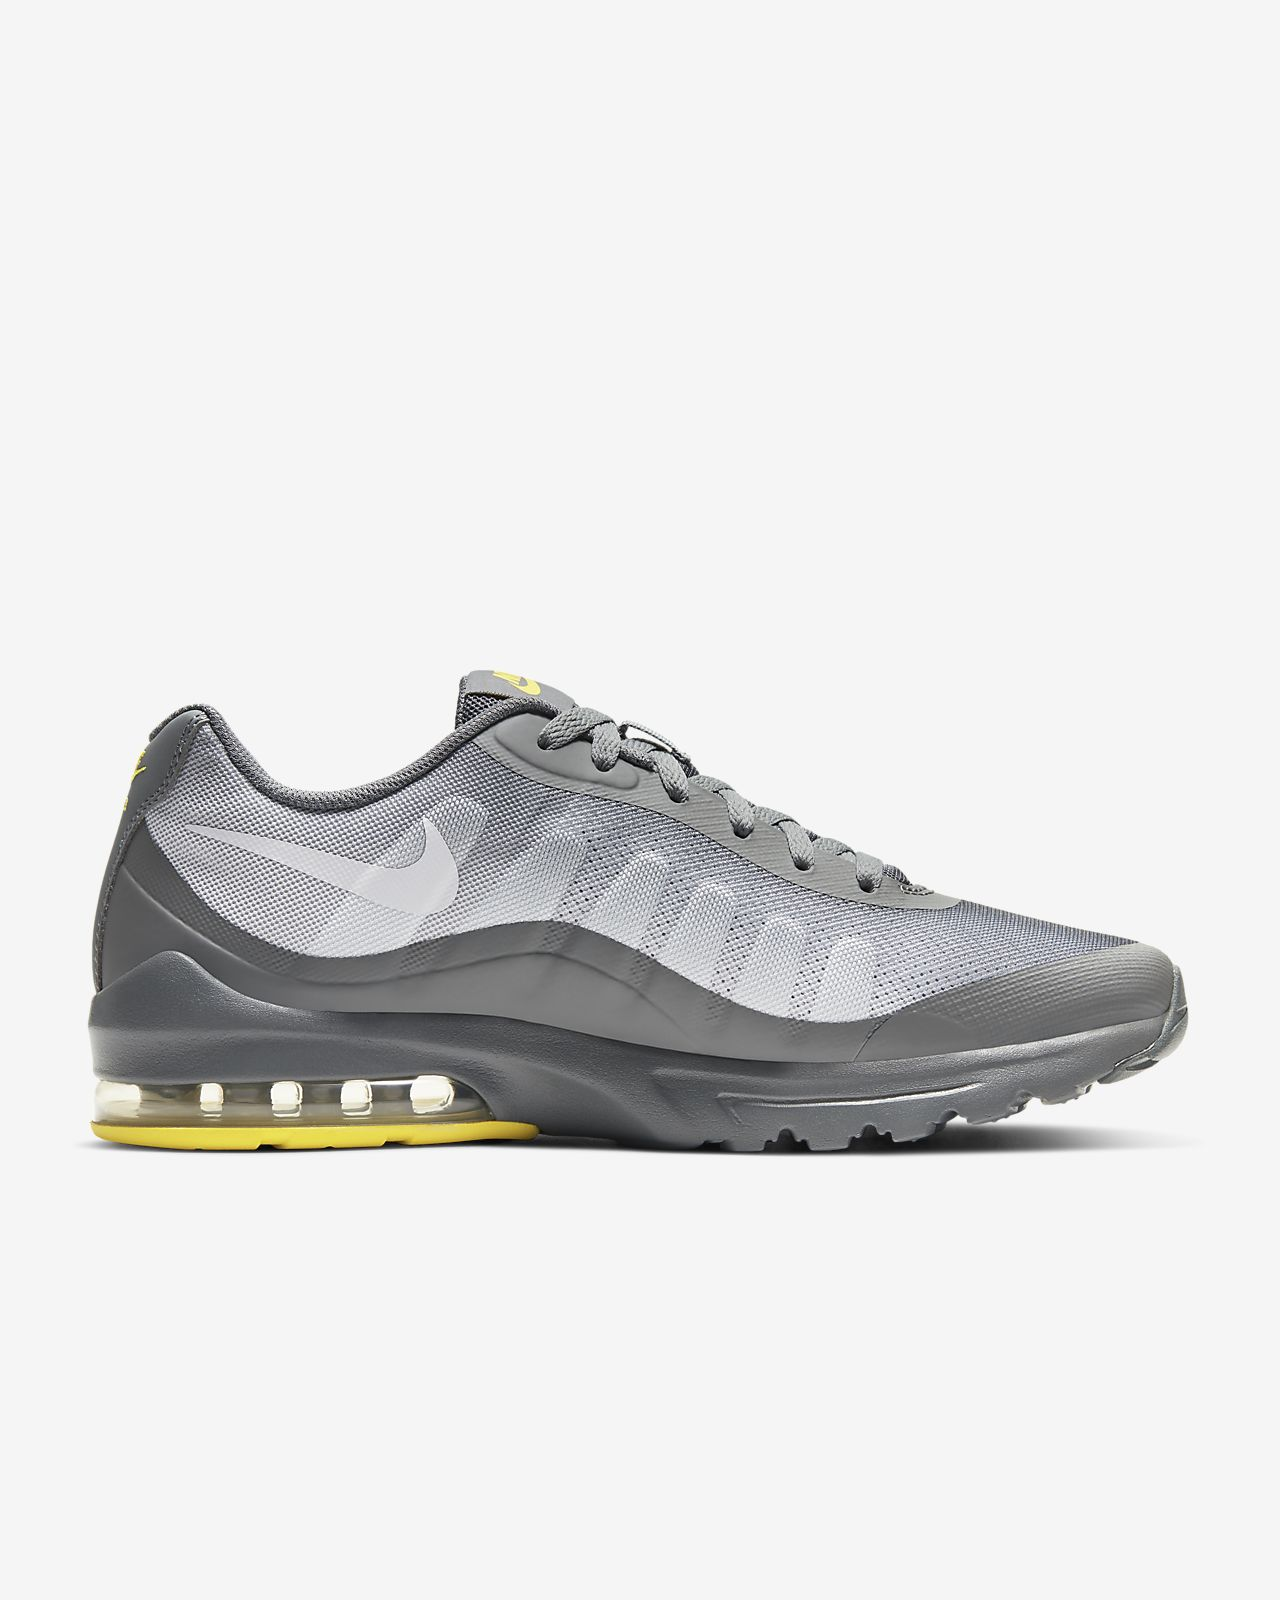 Lime Green, Grey, and Black Nike Air Max Invigor